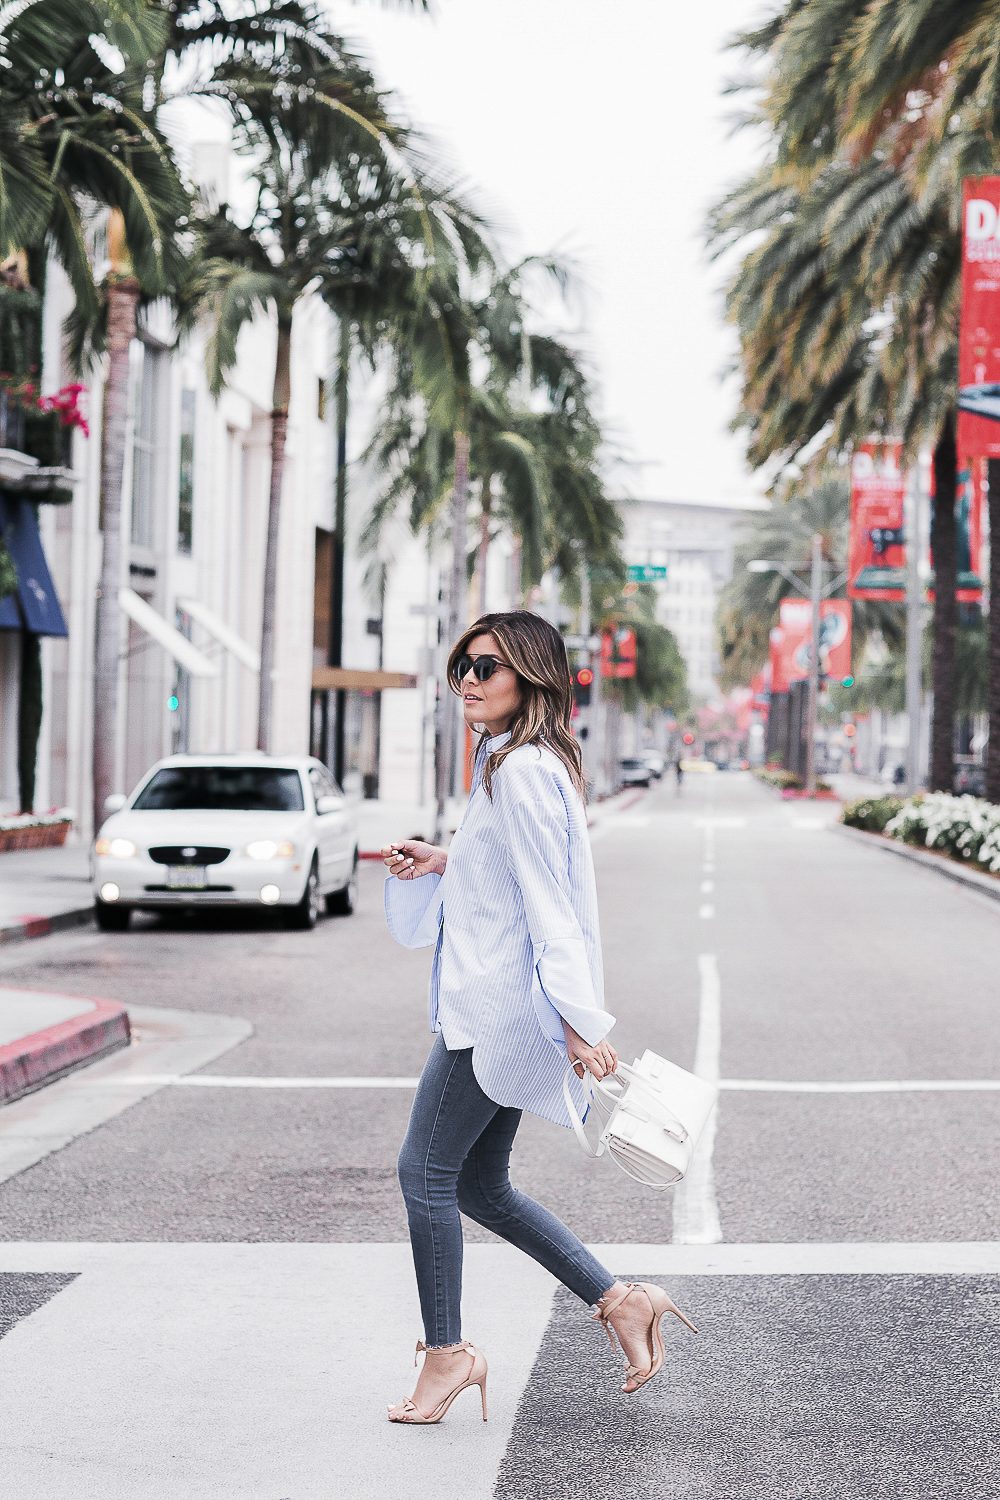 Style MBA wears Zara top and Grey Jeans